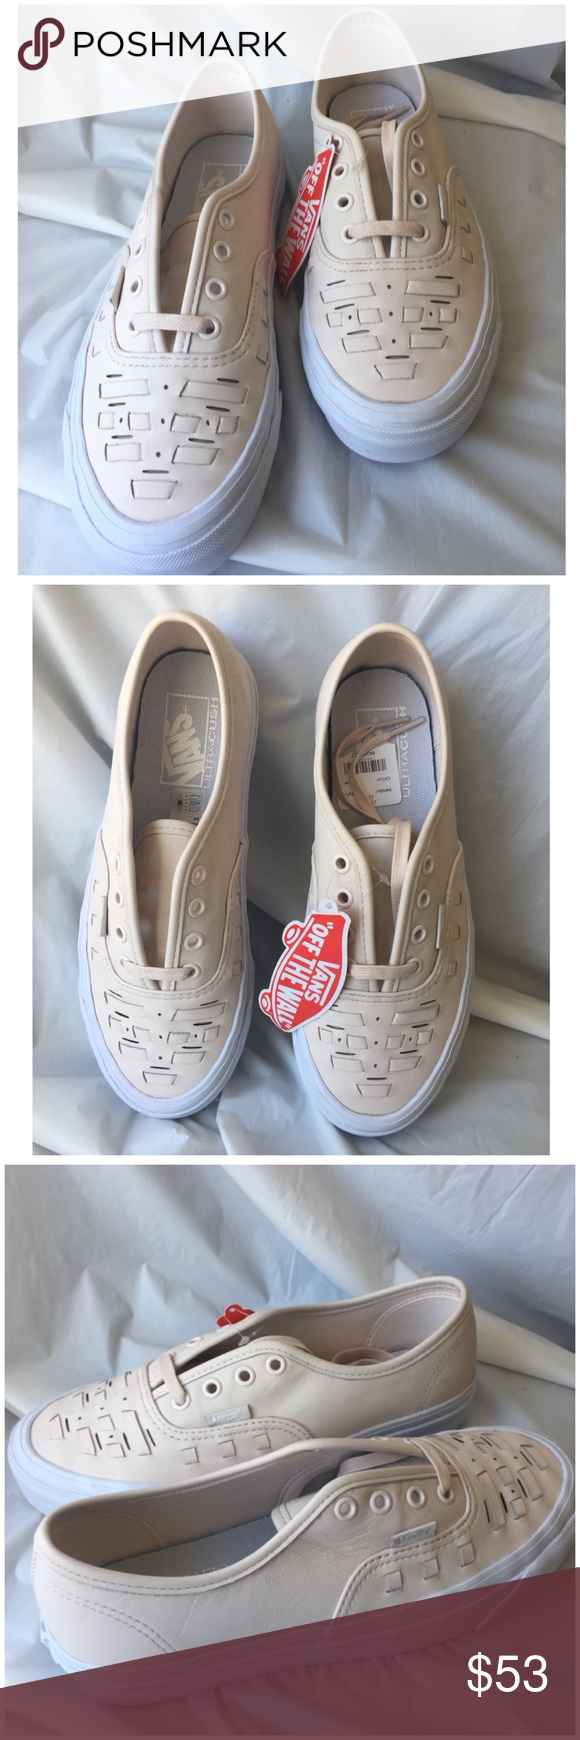 7804aaa19b Vans Authentic Weave DX (83) Leather upper Weave detailing of traditional  huarache sandals Lace up with metal eyelets Signature waffle outsole Color   ...